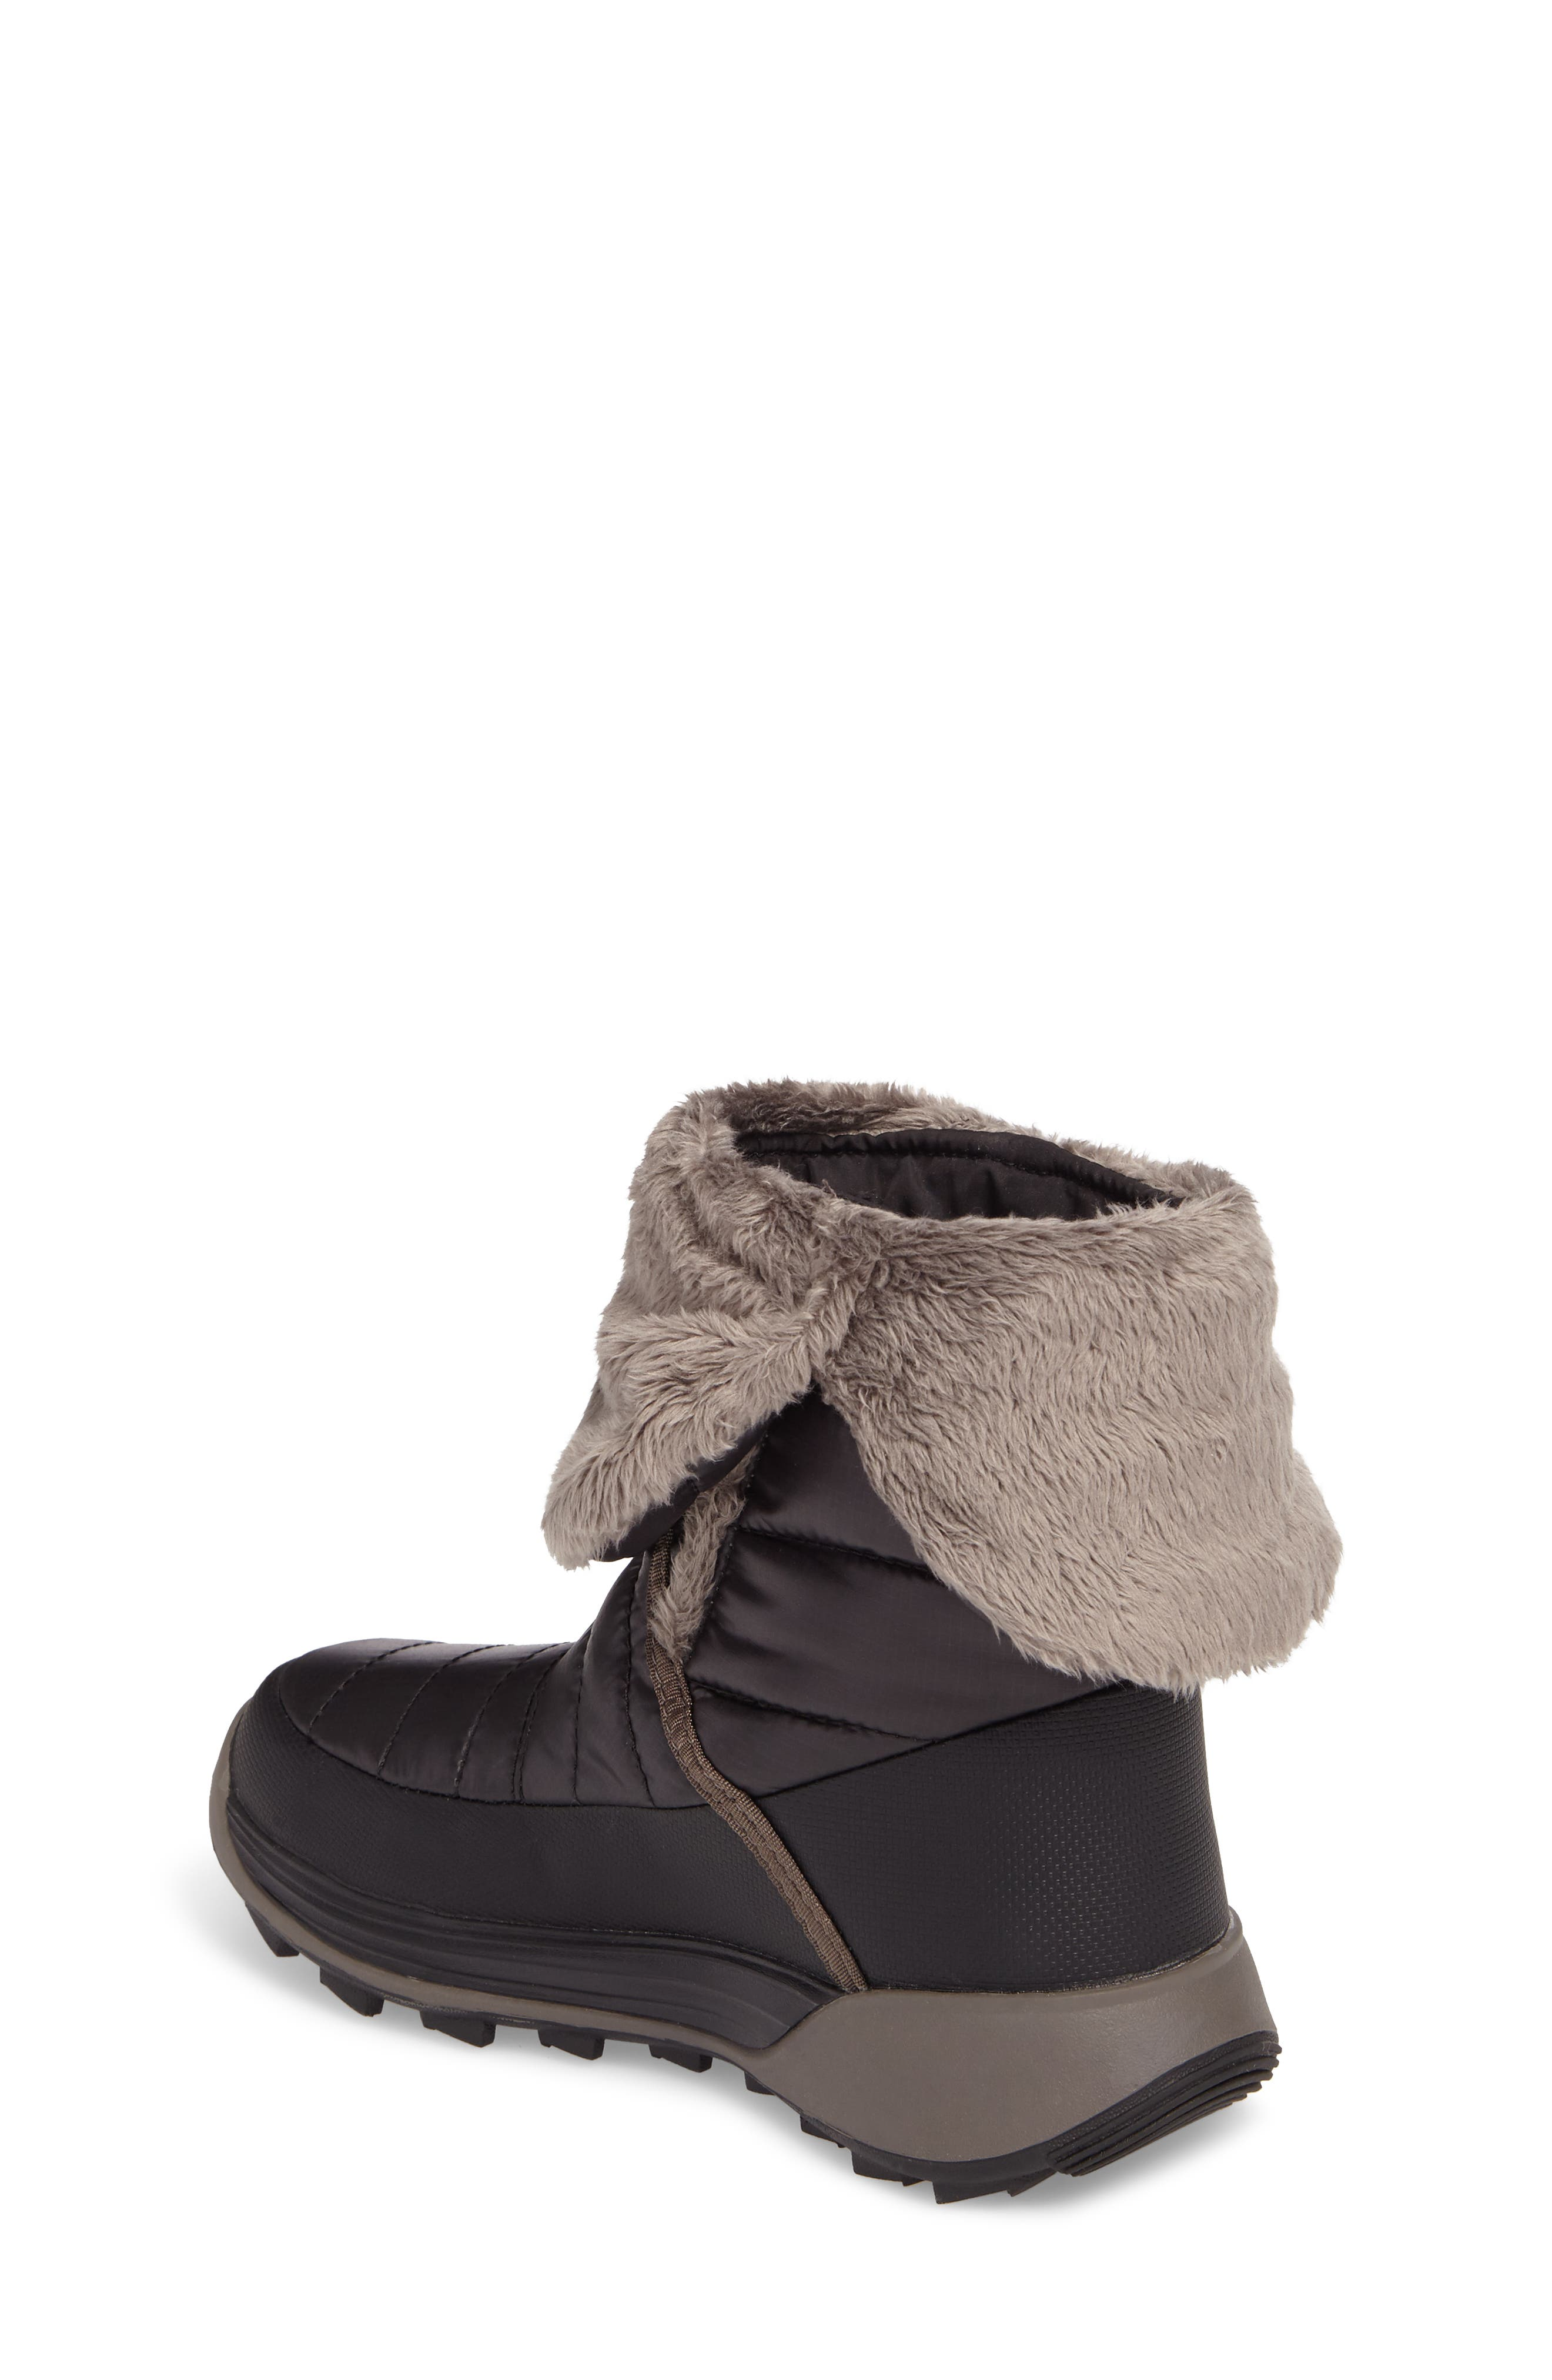 THE NORTH FACE, Amore II Water-Resistant Winter Boot, Alternate thumbnail 2, color, TNF BLACK/ DARK GULL GREY